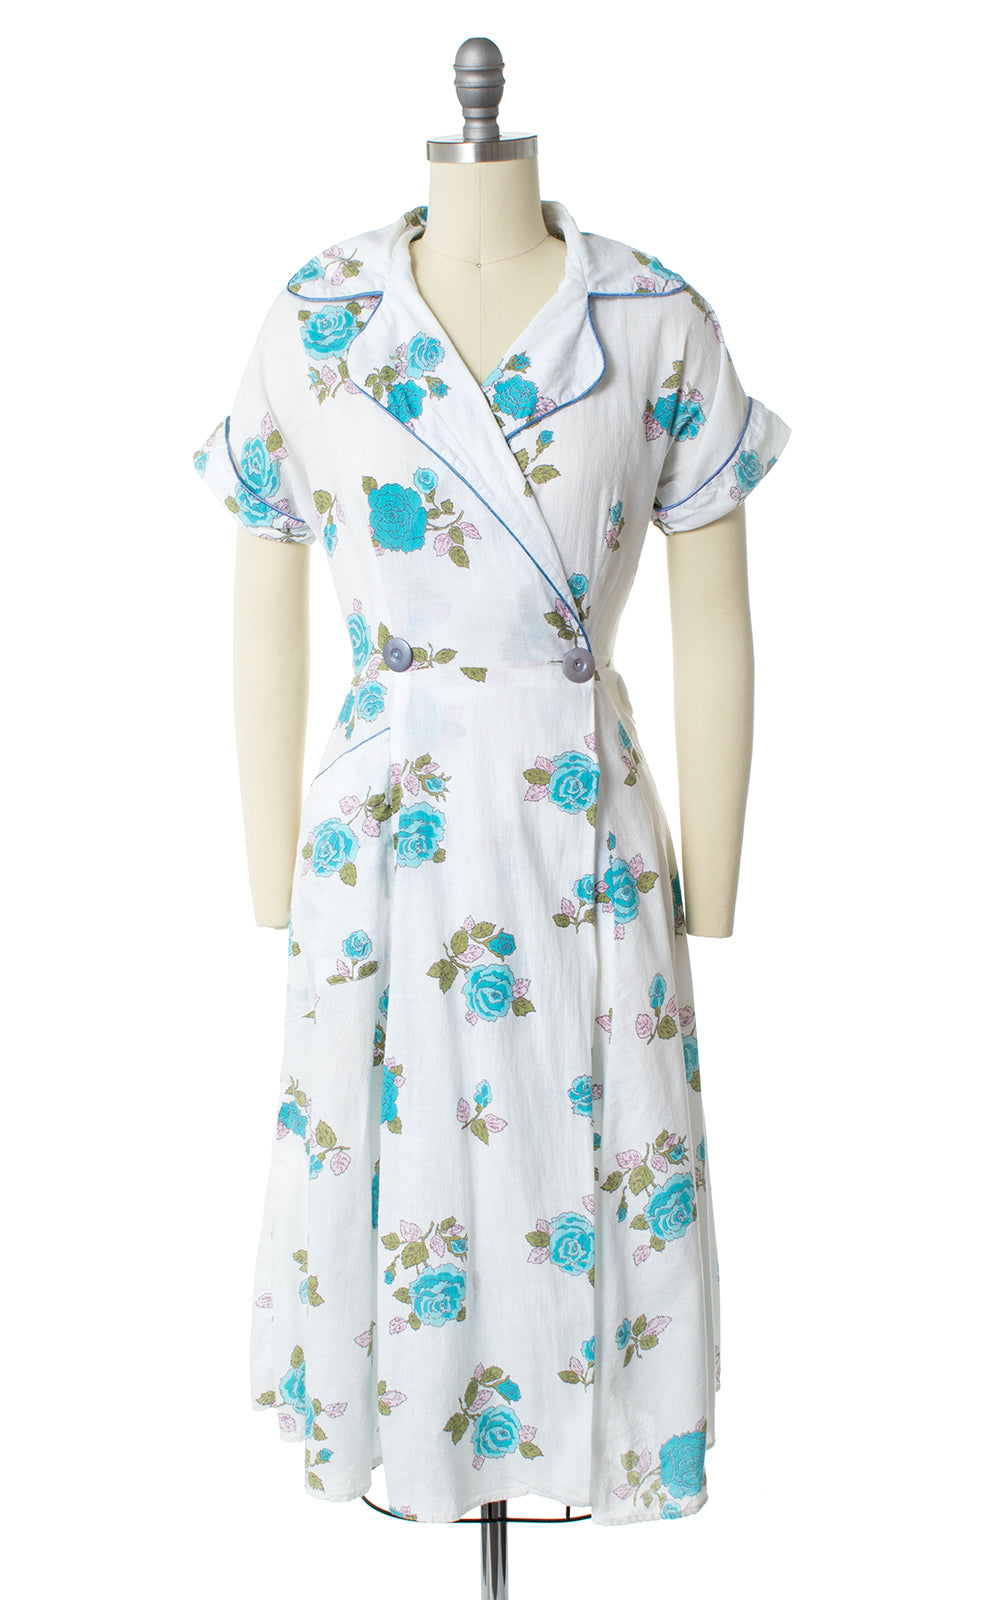 1940s Rose Print Cotton Wrap Dress with Pockets